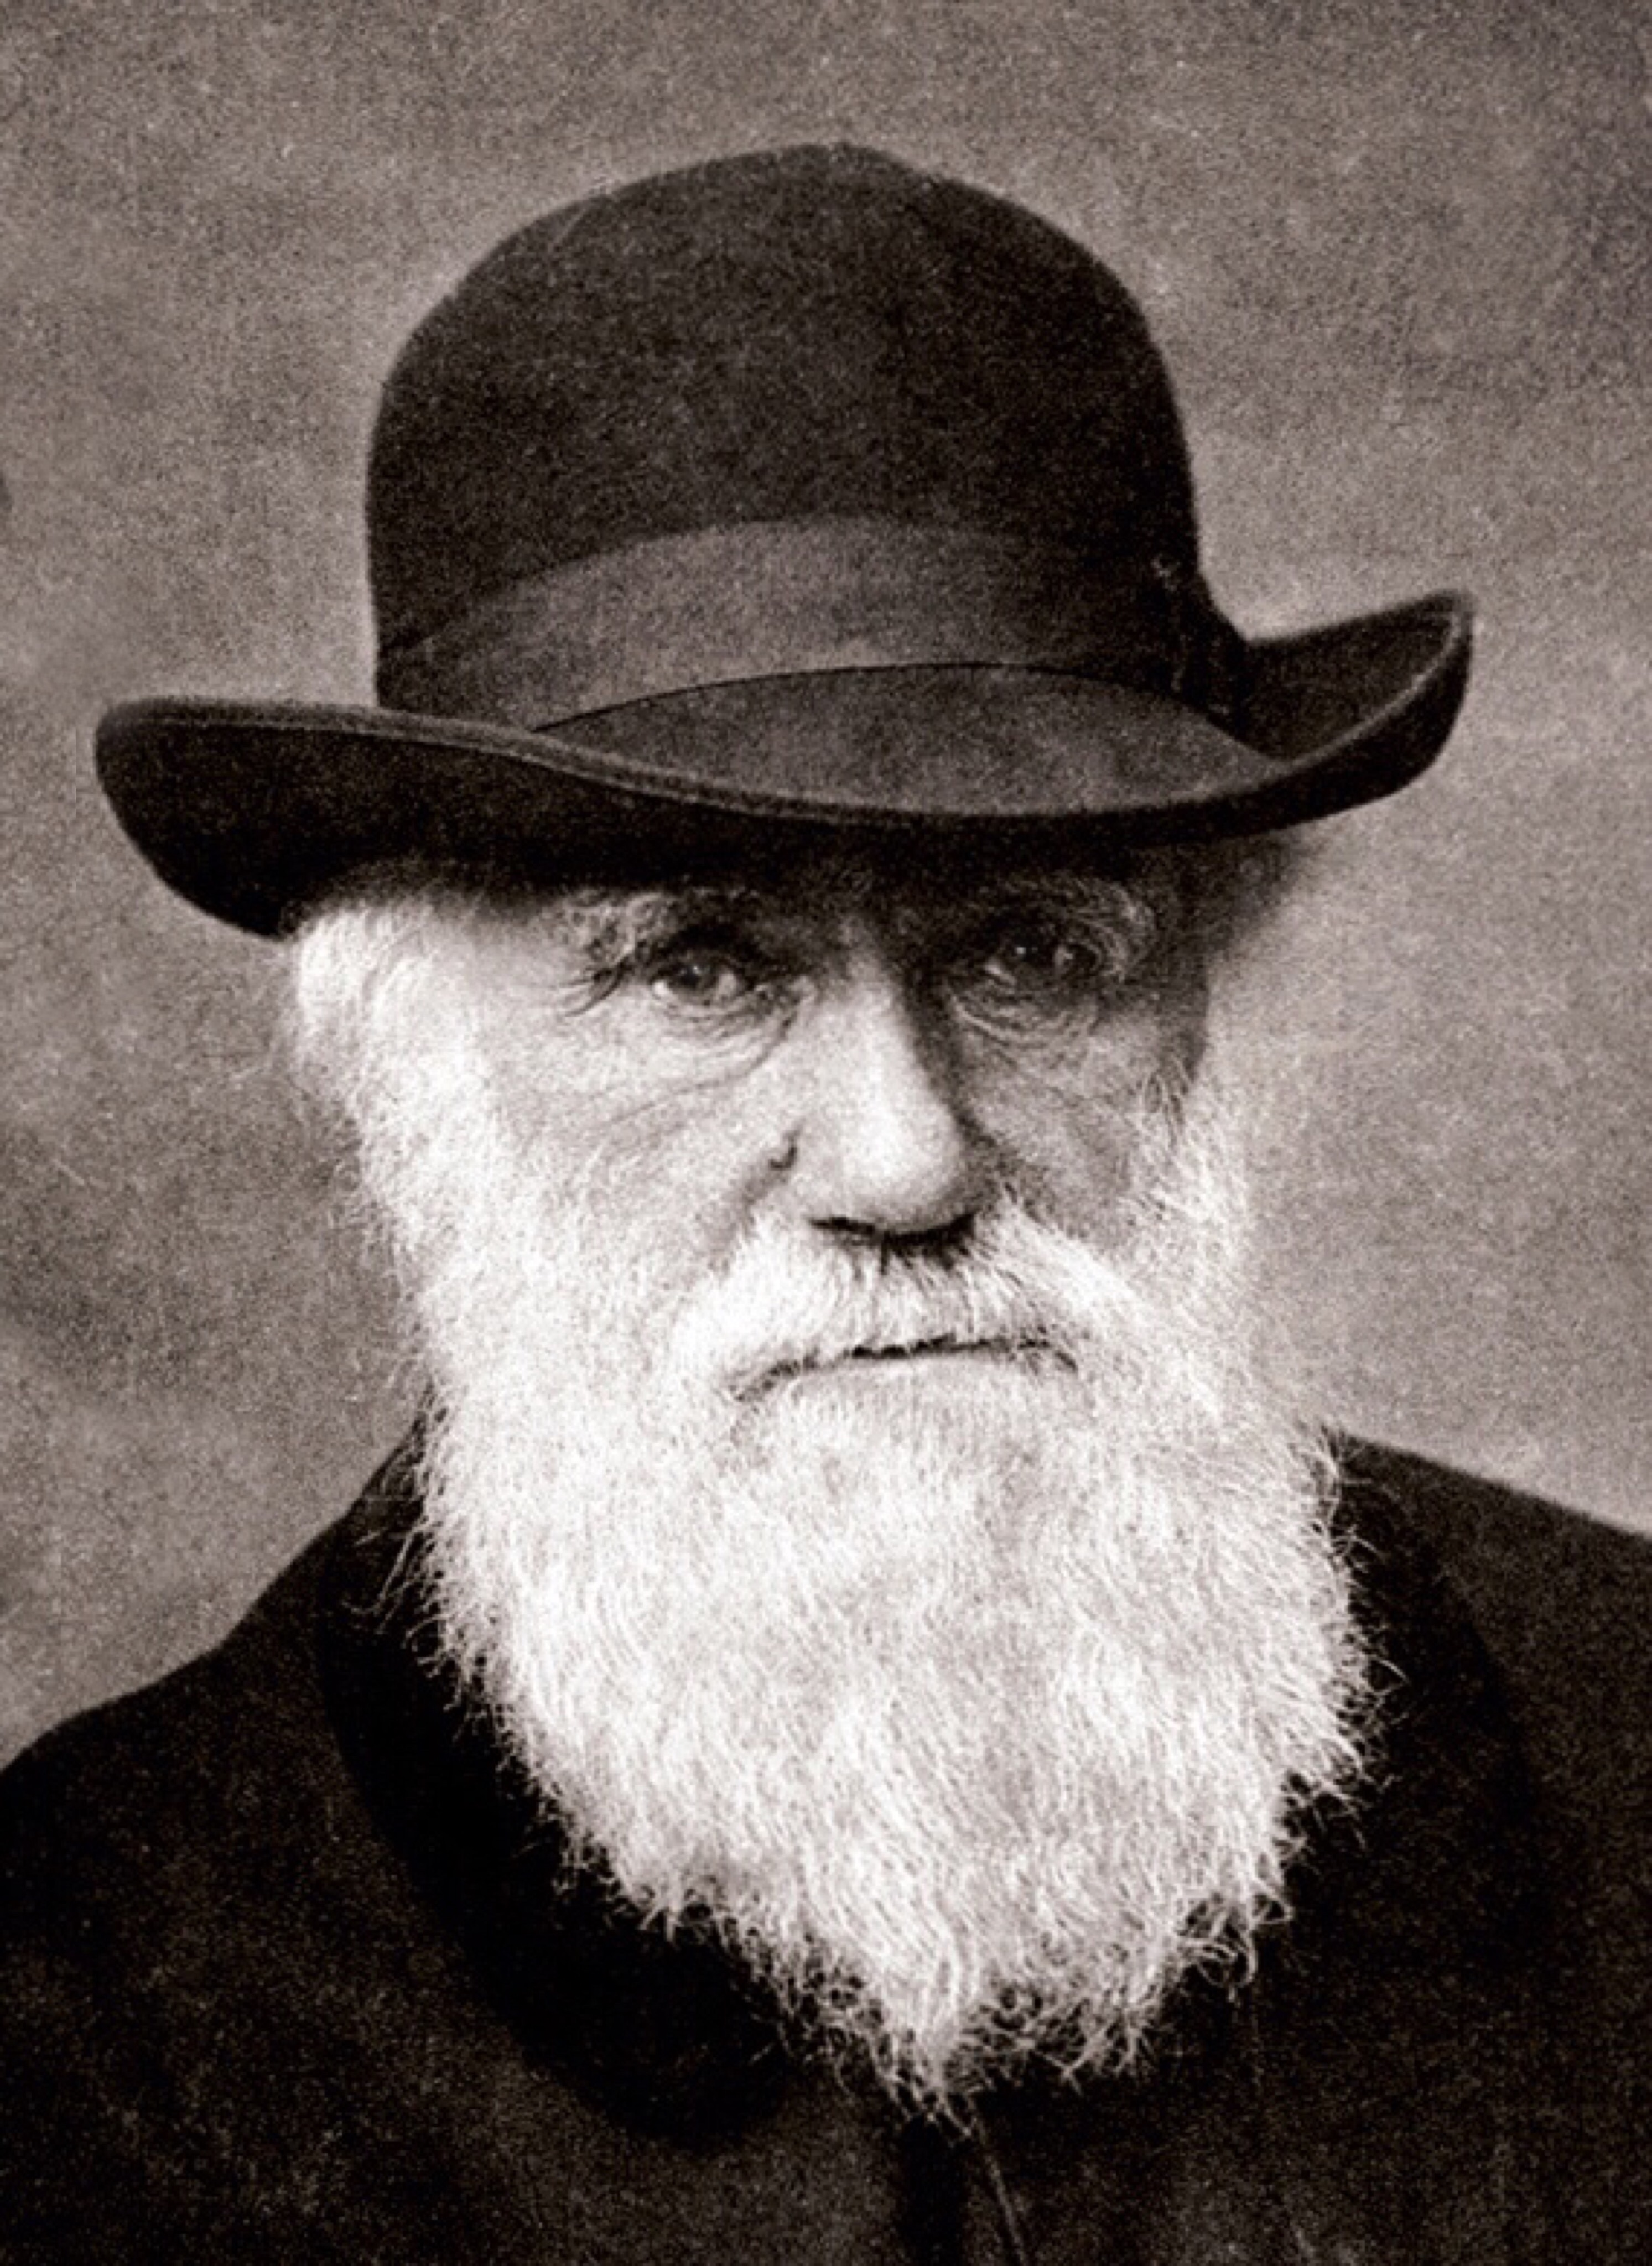 Darwin in 1880, still working on his contributions to evolutionary thought which had an enormous effect on many fields of science.